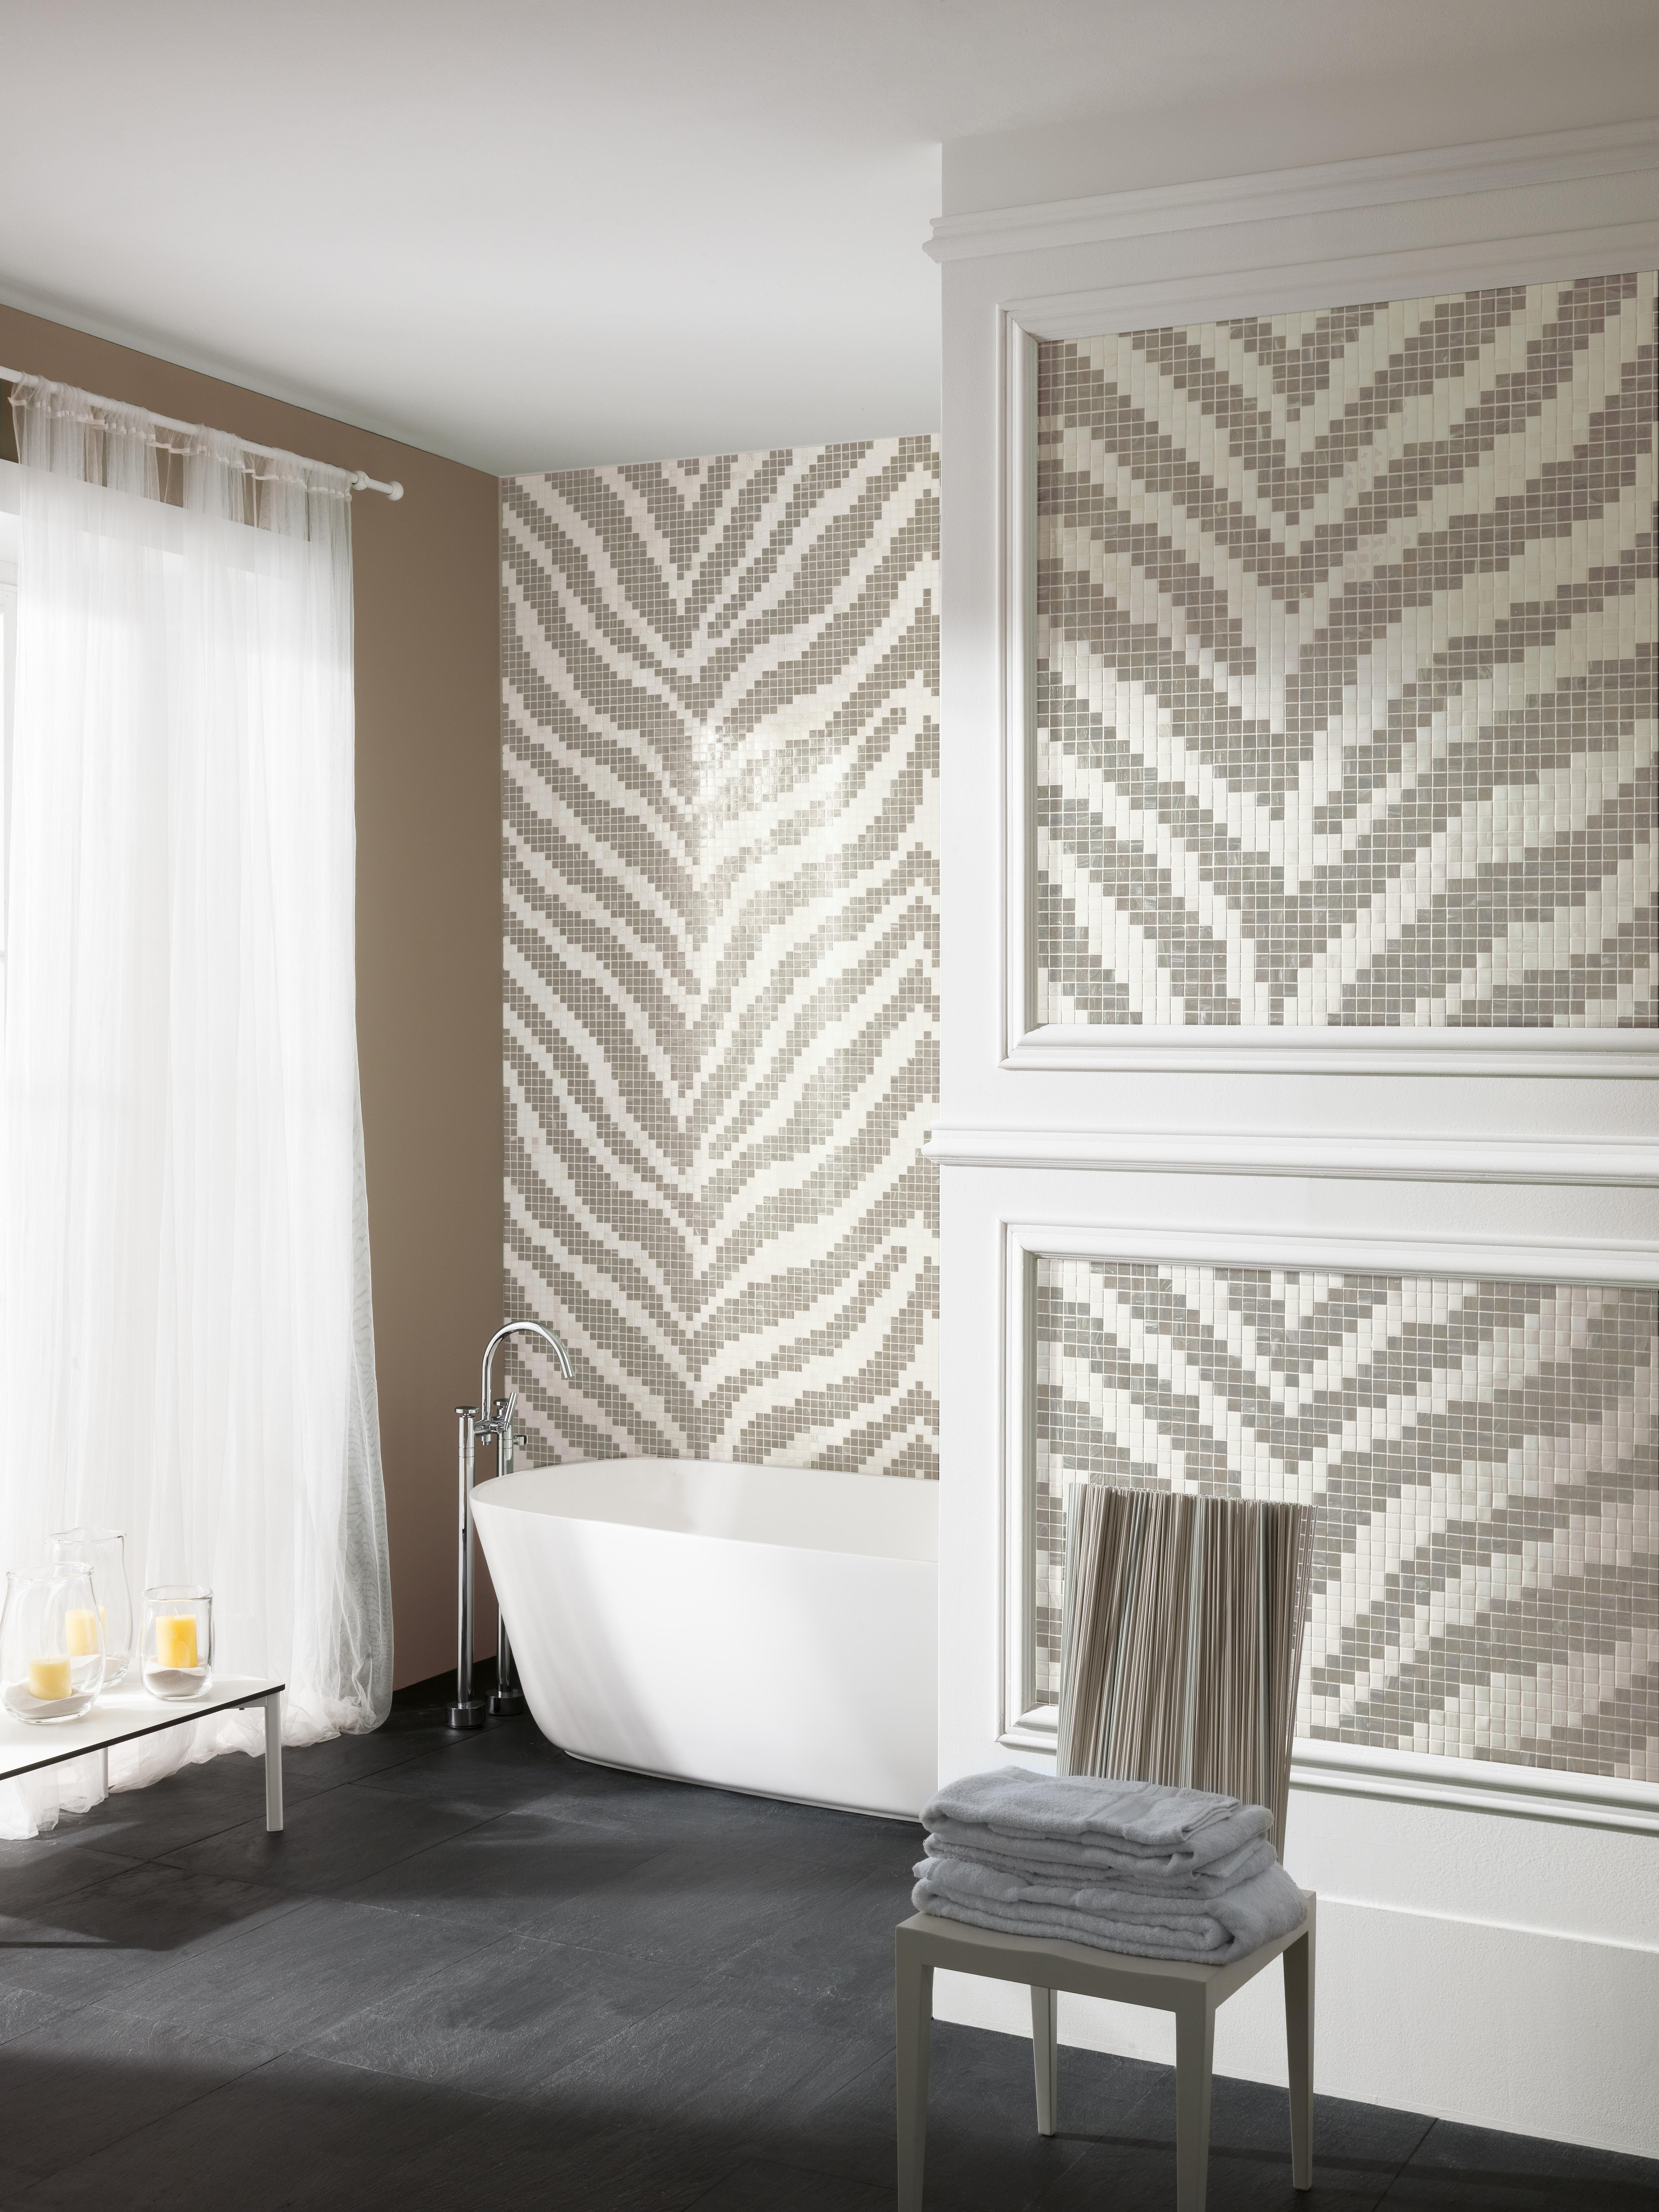 Wallpaper Collection Wild   These Mosaic Patterns Are Inspired By The  Modular Design Of Wallpaper, With The Familiar Repeat Pattern Structure  Translated ...